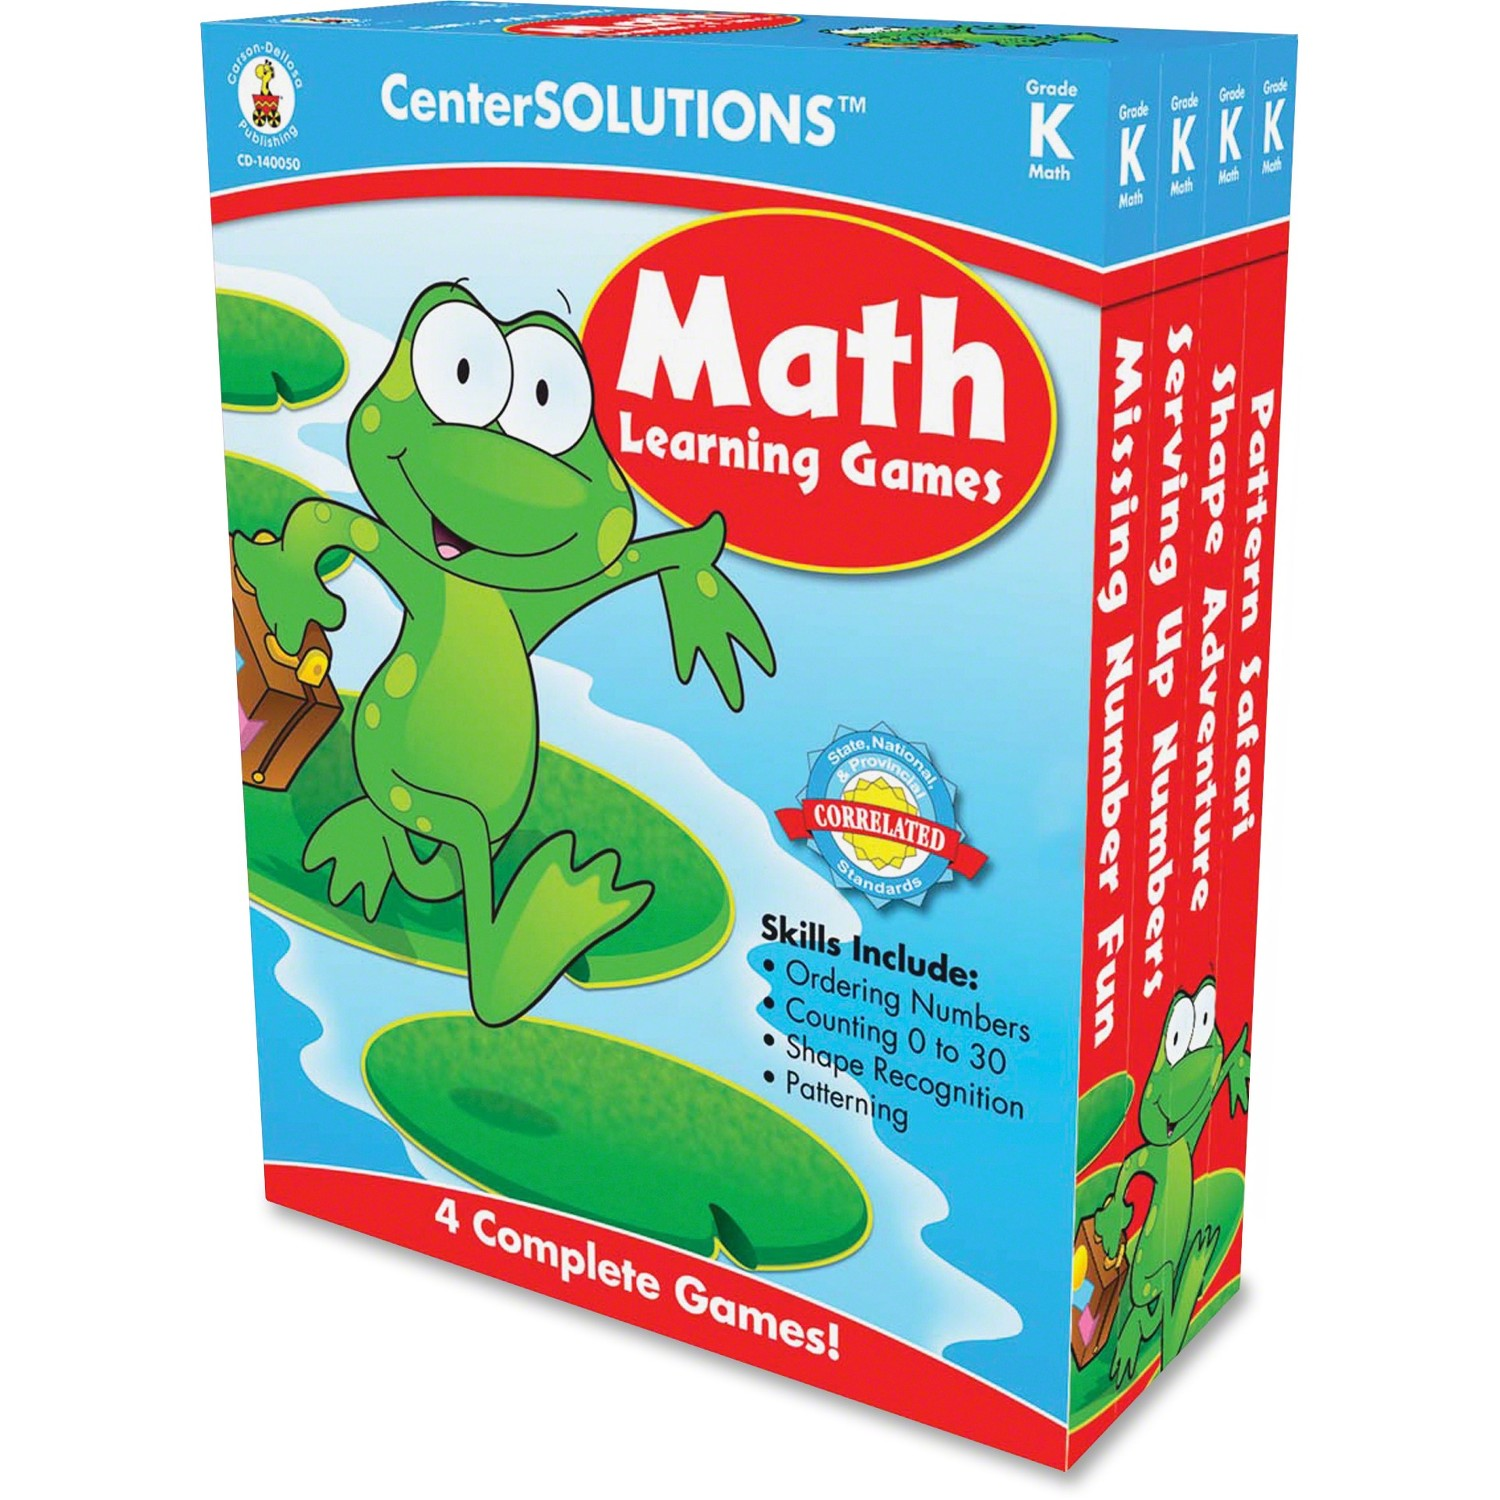 CenterSOLUTIONS Grade K CenterSolutions Math Learning Games